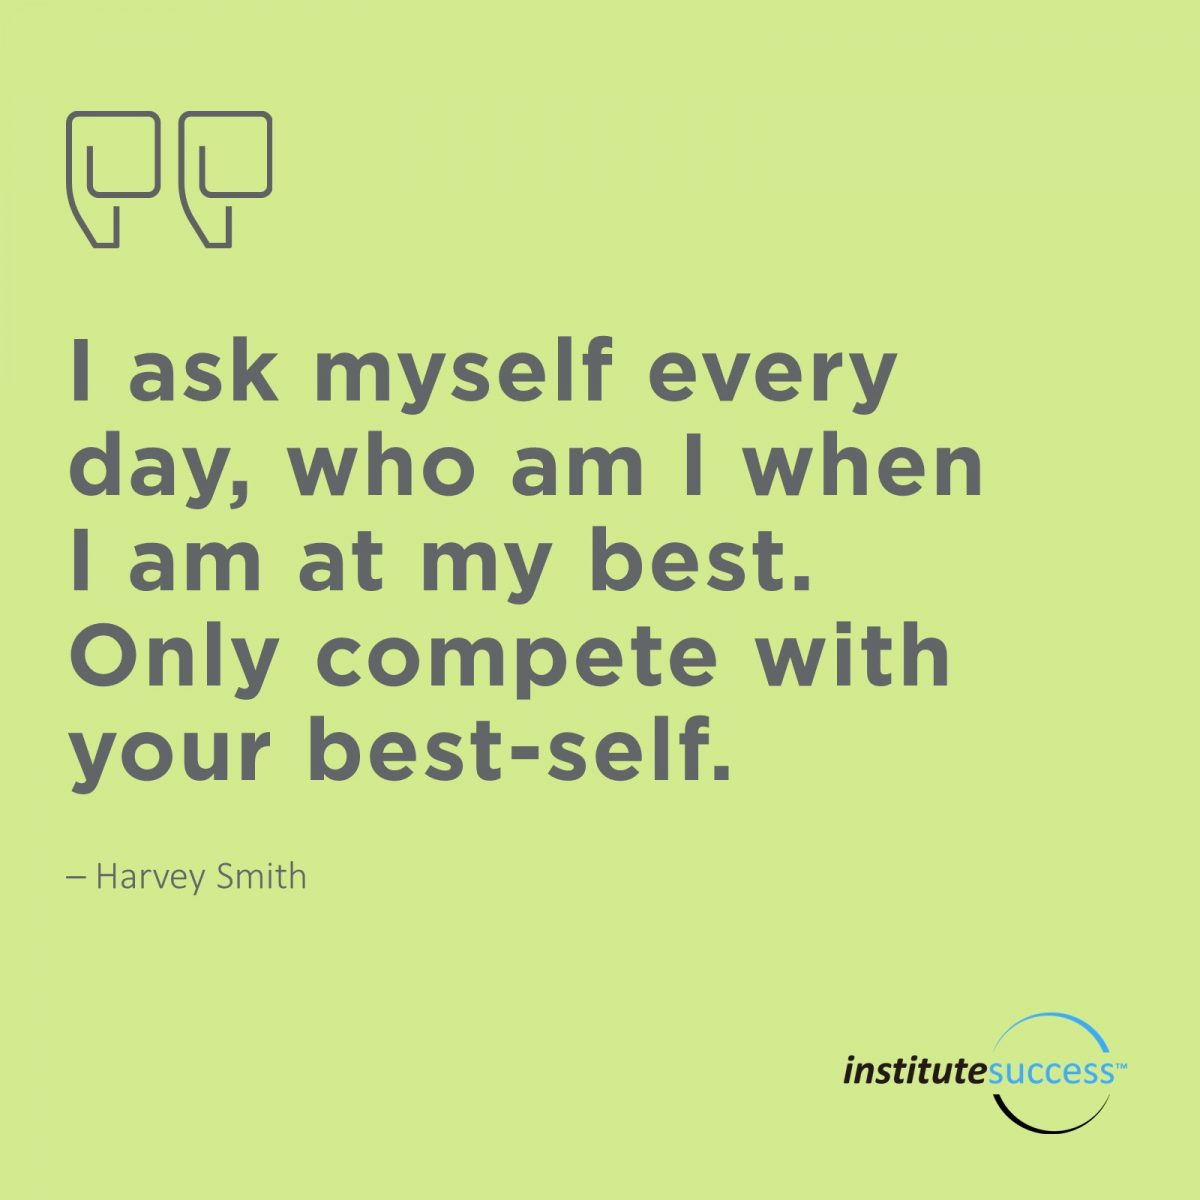 I ask myself every day, who am I when I am at my best. Only compete with your best-self.	Harvey Smith